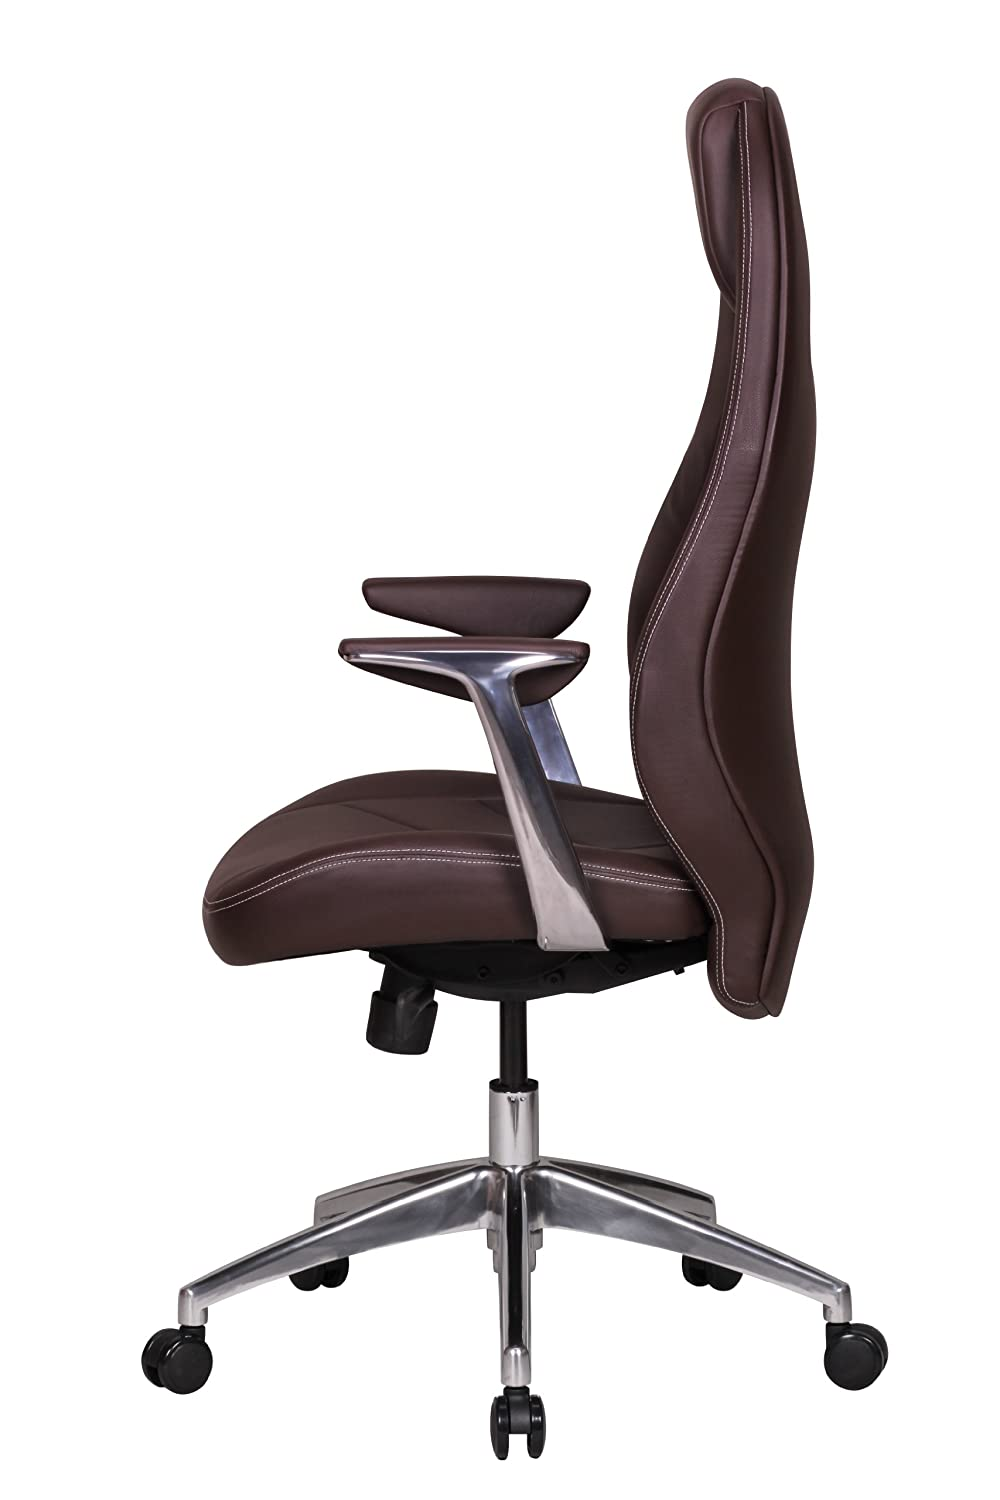 office recliner chair. Leather Executive Office Chair Brown Computer Work Desk High Back Furniture New: Amazon.co.uk: Kitchen \u0026 Home Recliner